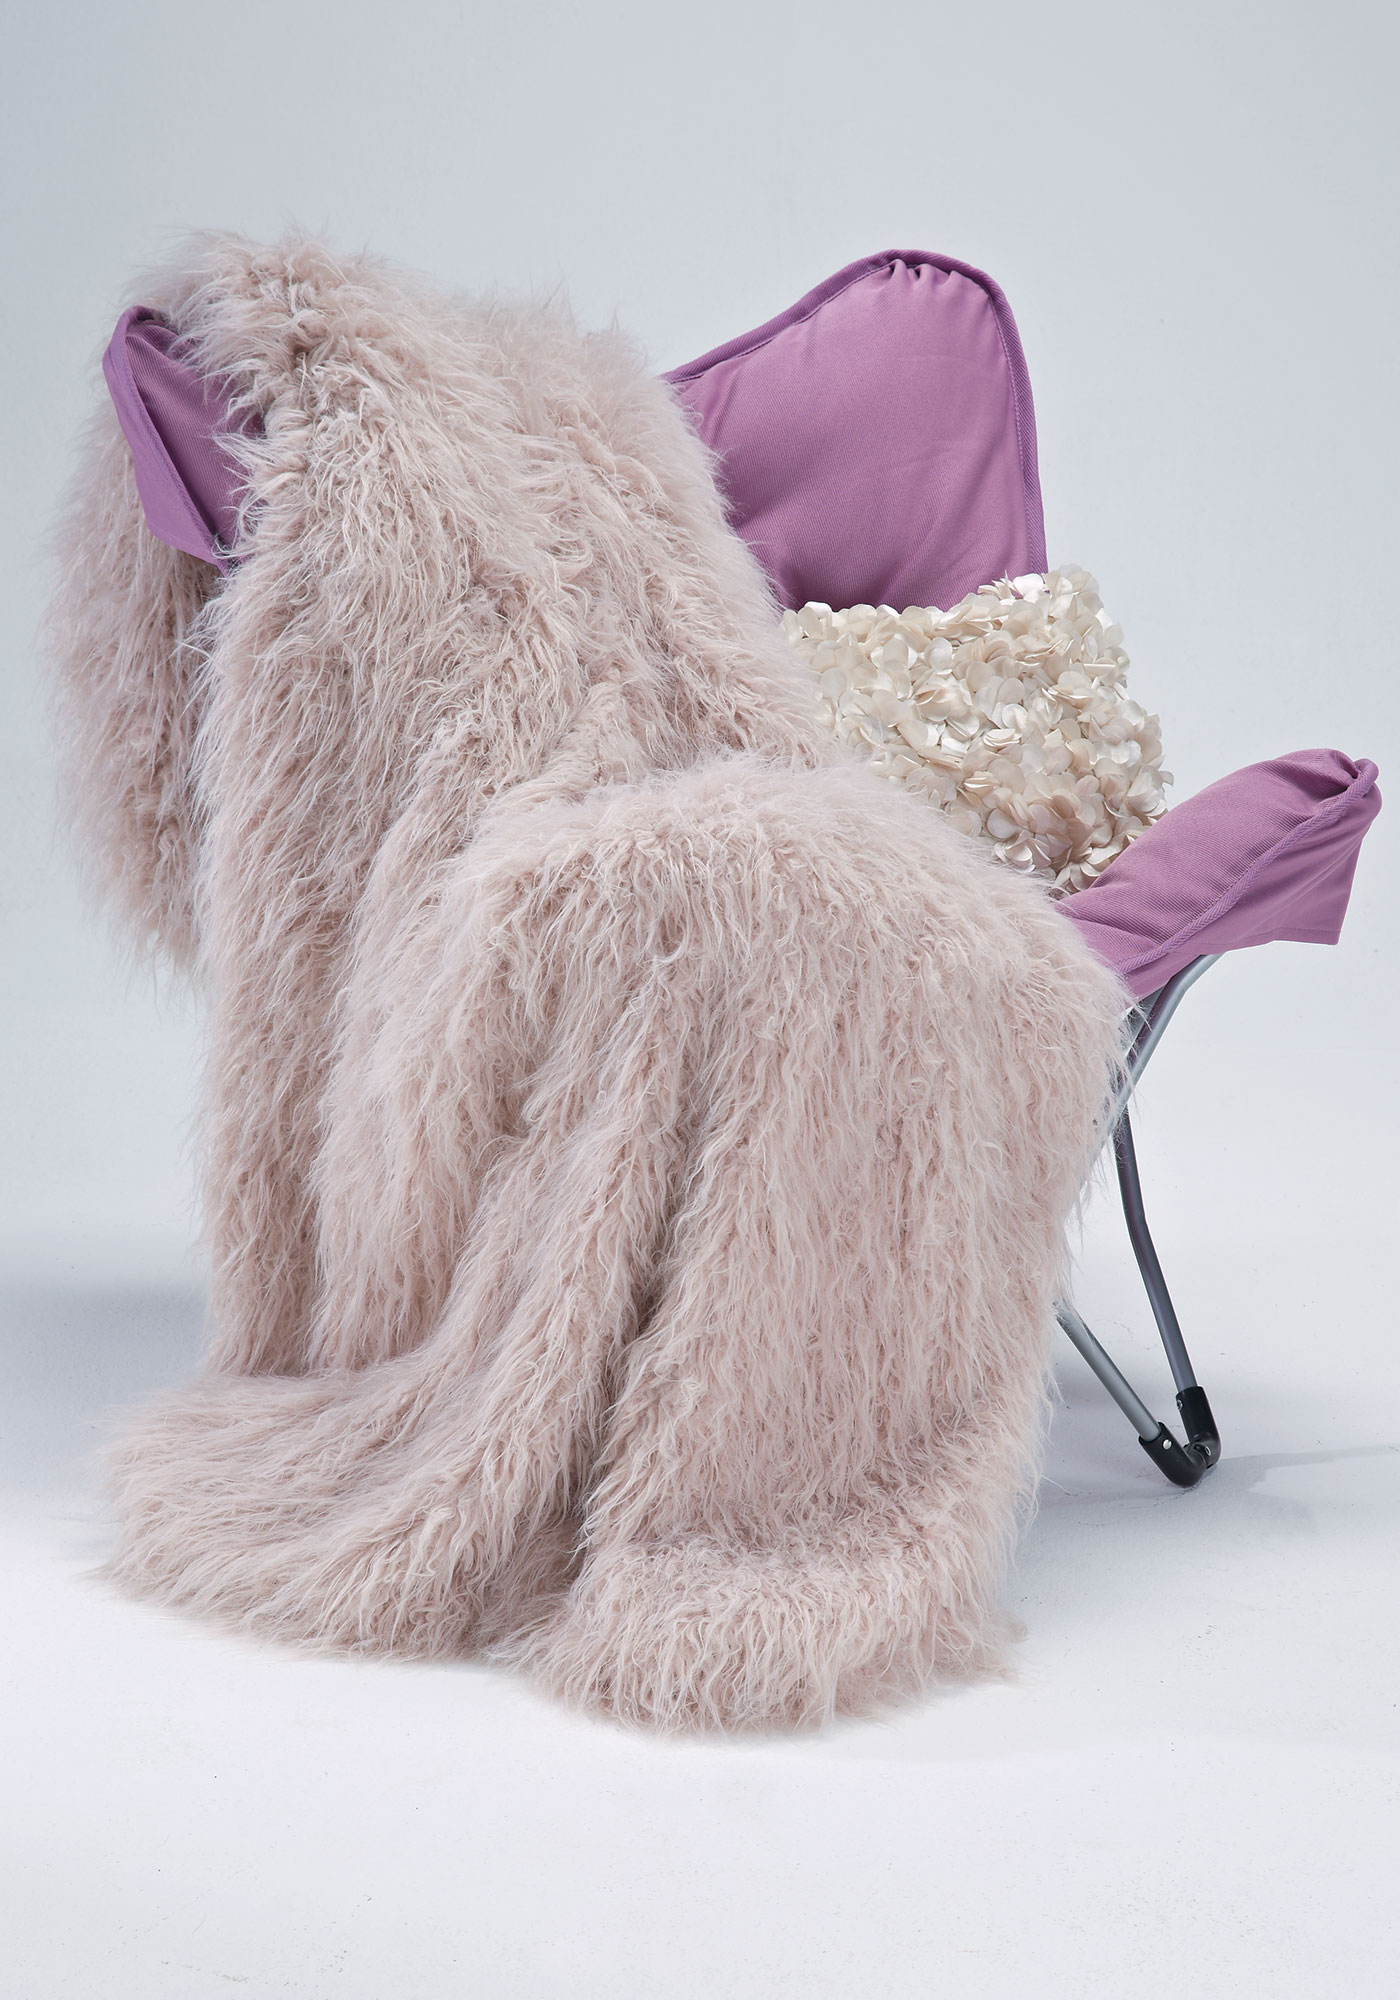 Mauve Tibetan Lamb Faux Fur Throw, $99 @fabulousfurs.com